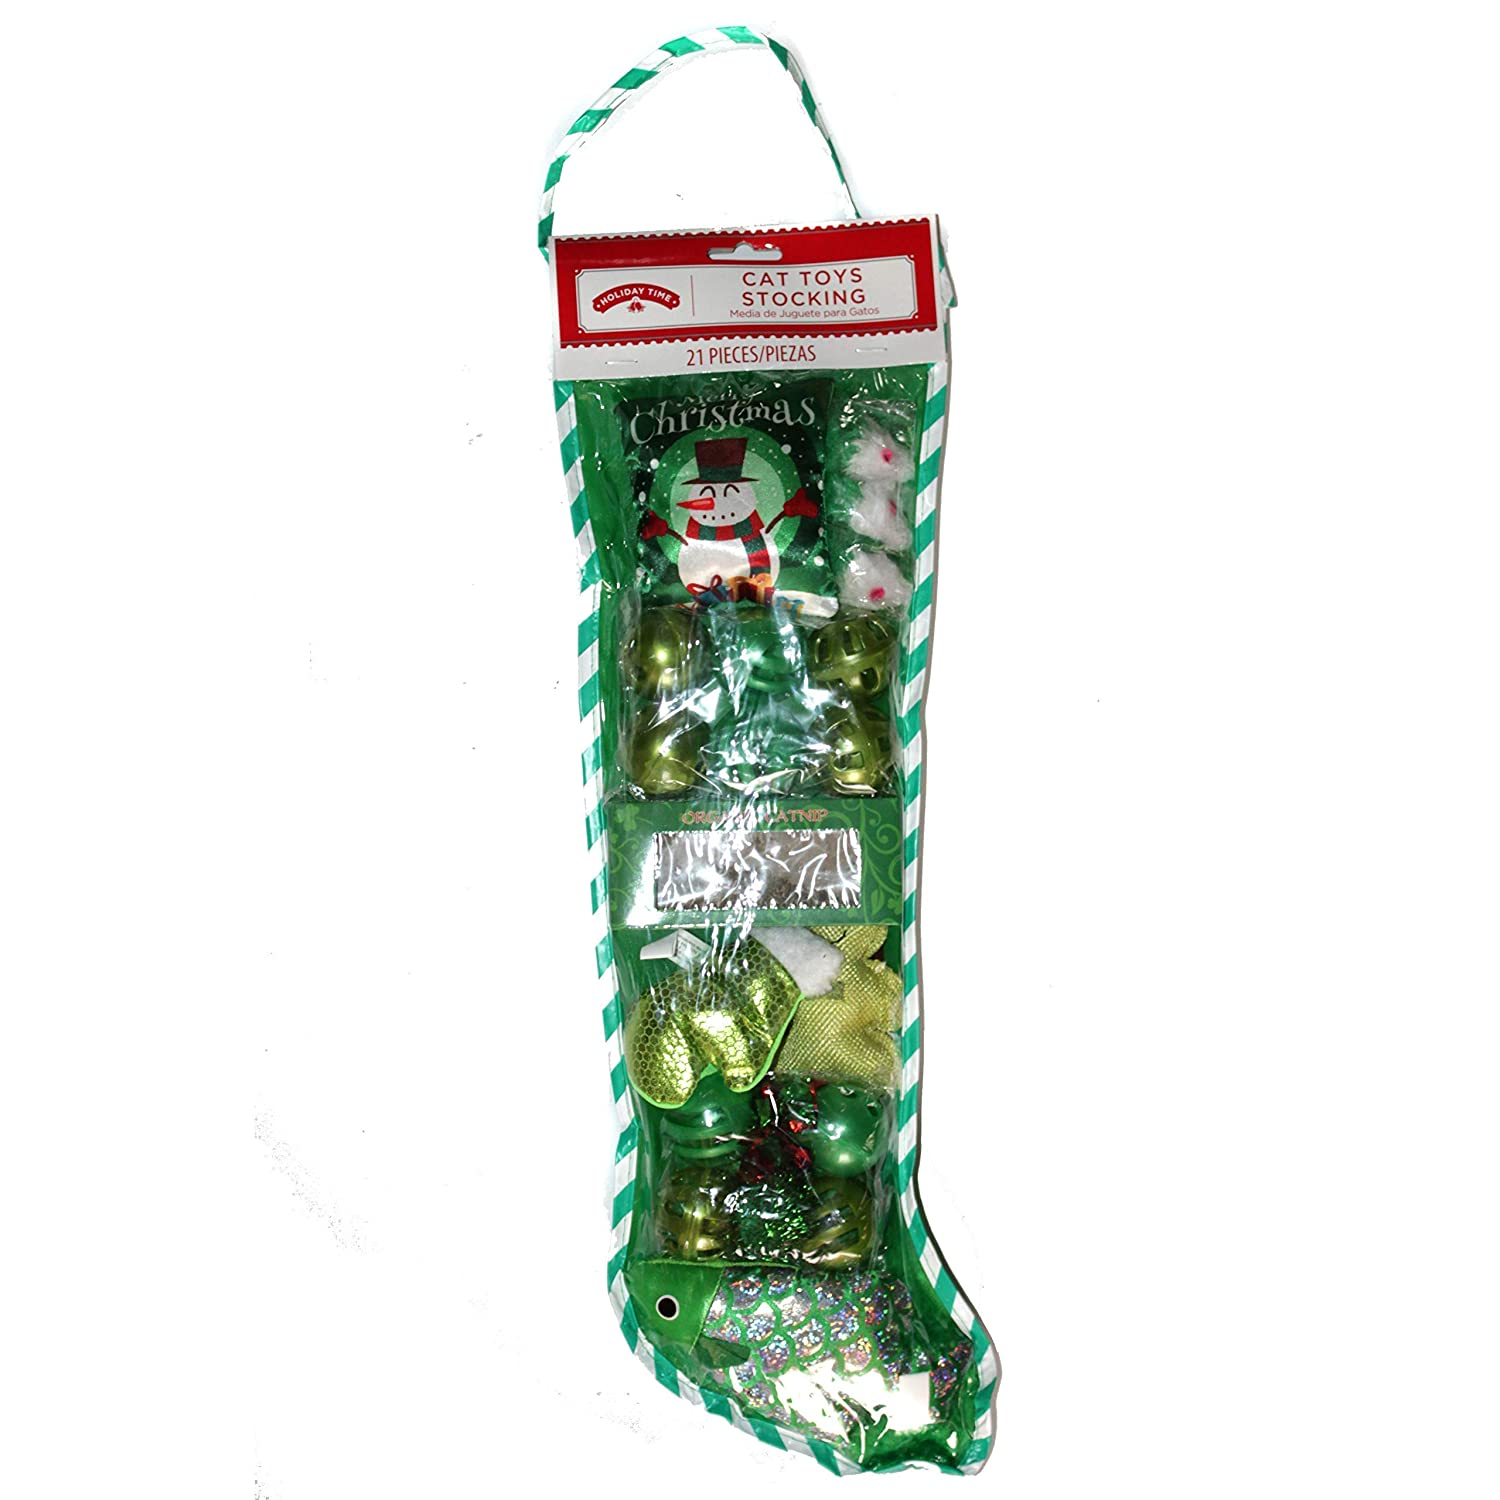 Amazon.com : Holiday Time 21pc Set Cat Toys Stocking - Catnip+Plush Toys+Balls+Teaser+Mice - Pet Gift - Green : Pet Supplies